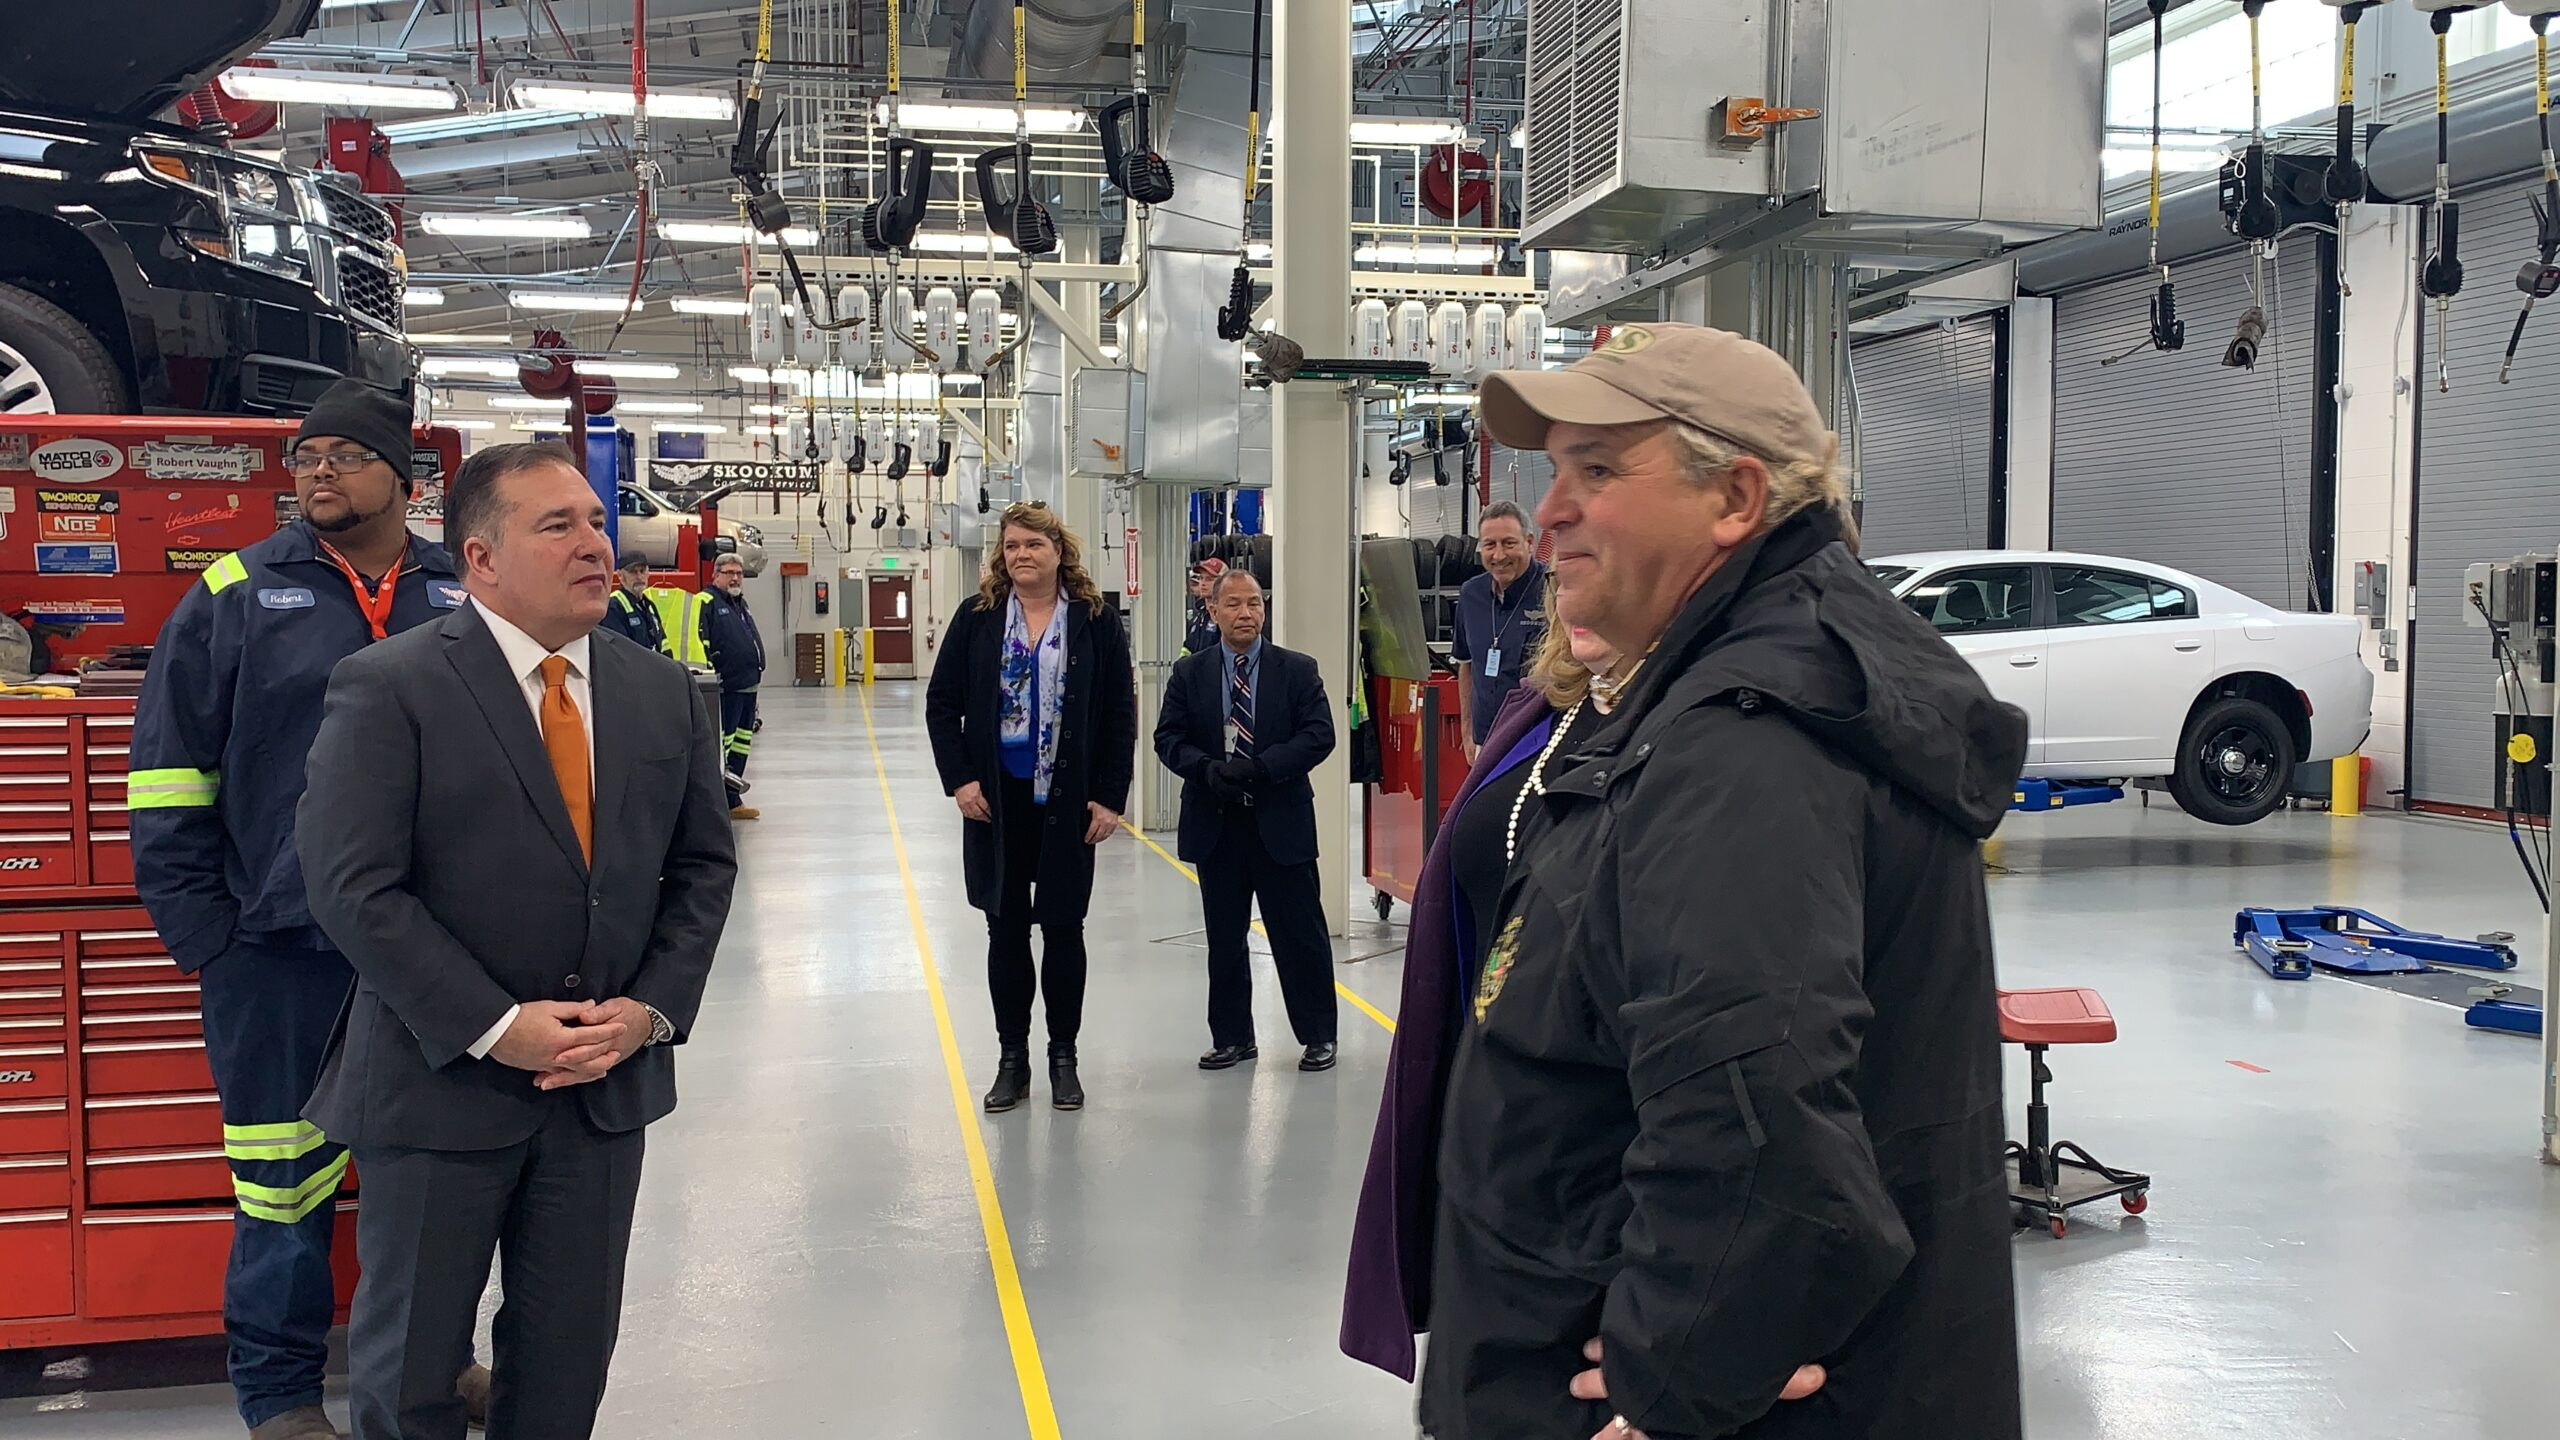 Maner Lawton (right foreground), chief, Driver Training Unit, Diplomatic Security Service's (DSS) Foreign Affairs Security Training Center (FASTC) and staff conduct a tour of the Vehicle Maintenance Facility for then Assistant Secretary for Diplomatic Security Michael Evanoff (left foreground) and other federal and state officials during the FASTC inauguration in November 2019. The 17,000 sq. ft. facility contains 14 vehicle bays and allows for DSS to provide on-site vehicle maintenance and repairs, Blackstone, Virginia. (U.S. Department of State photo)